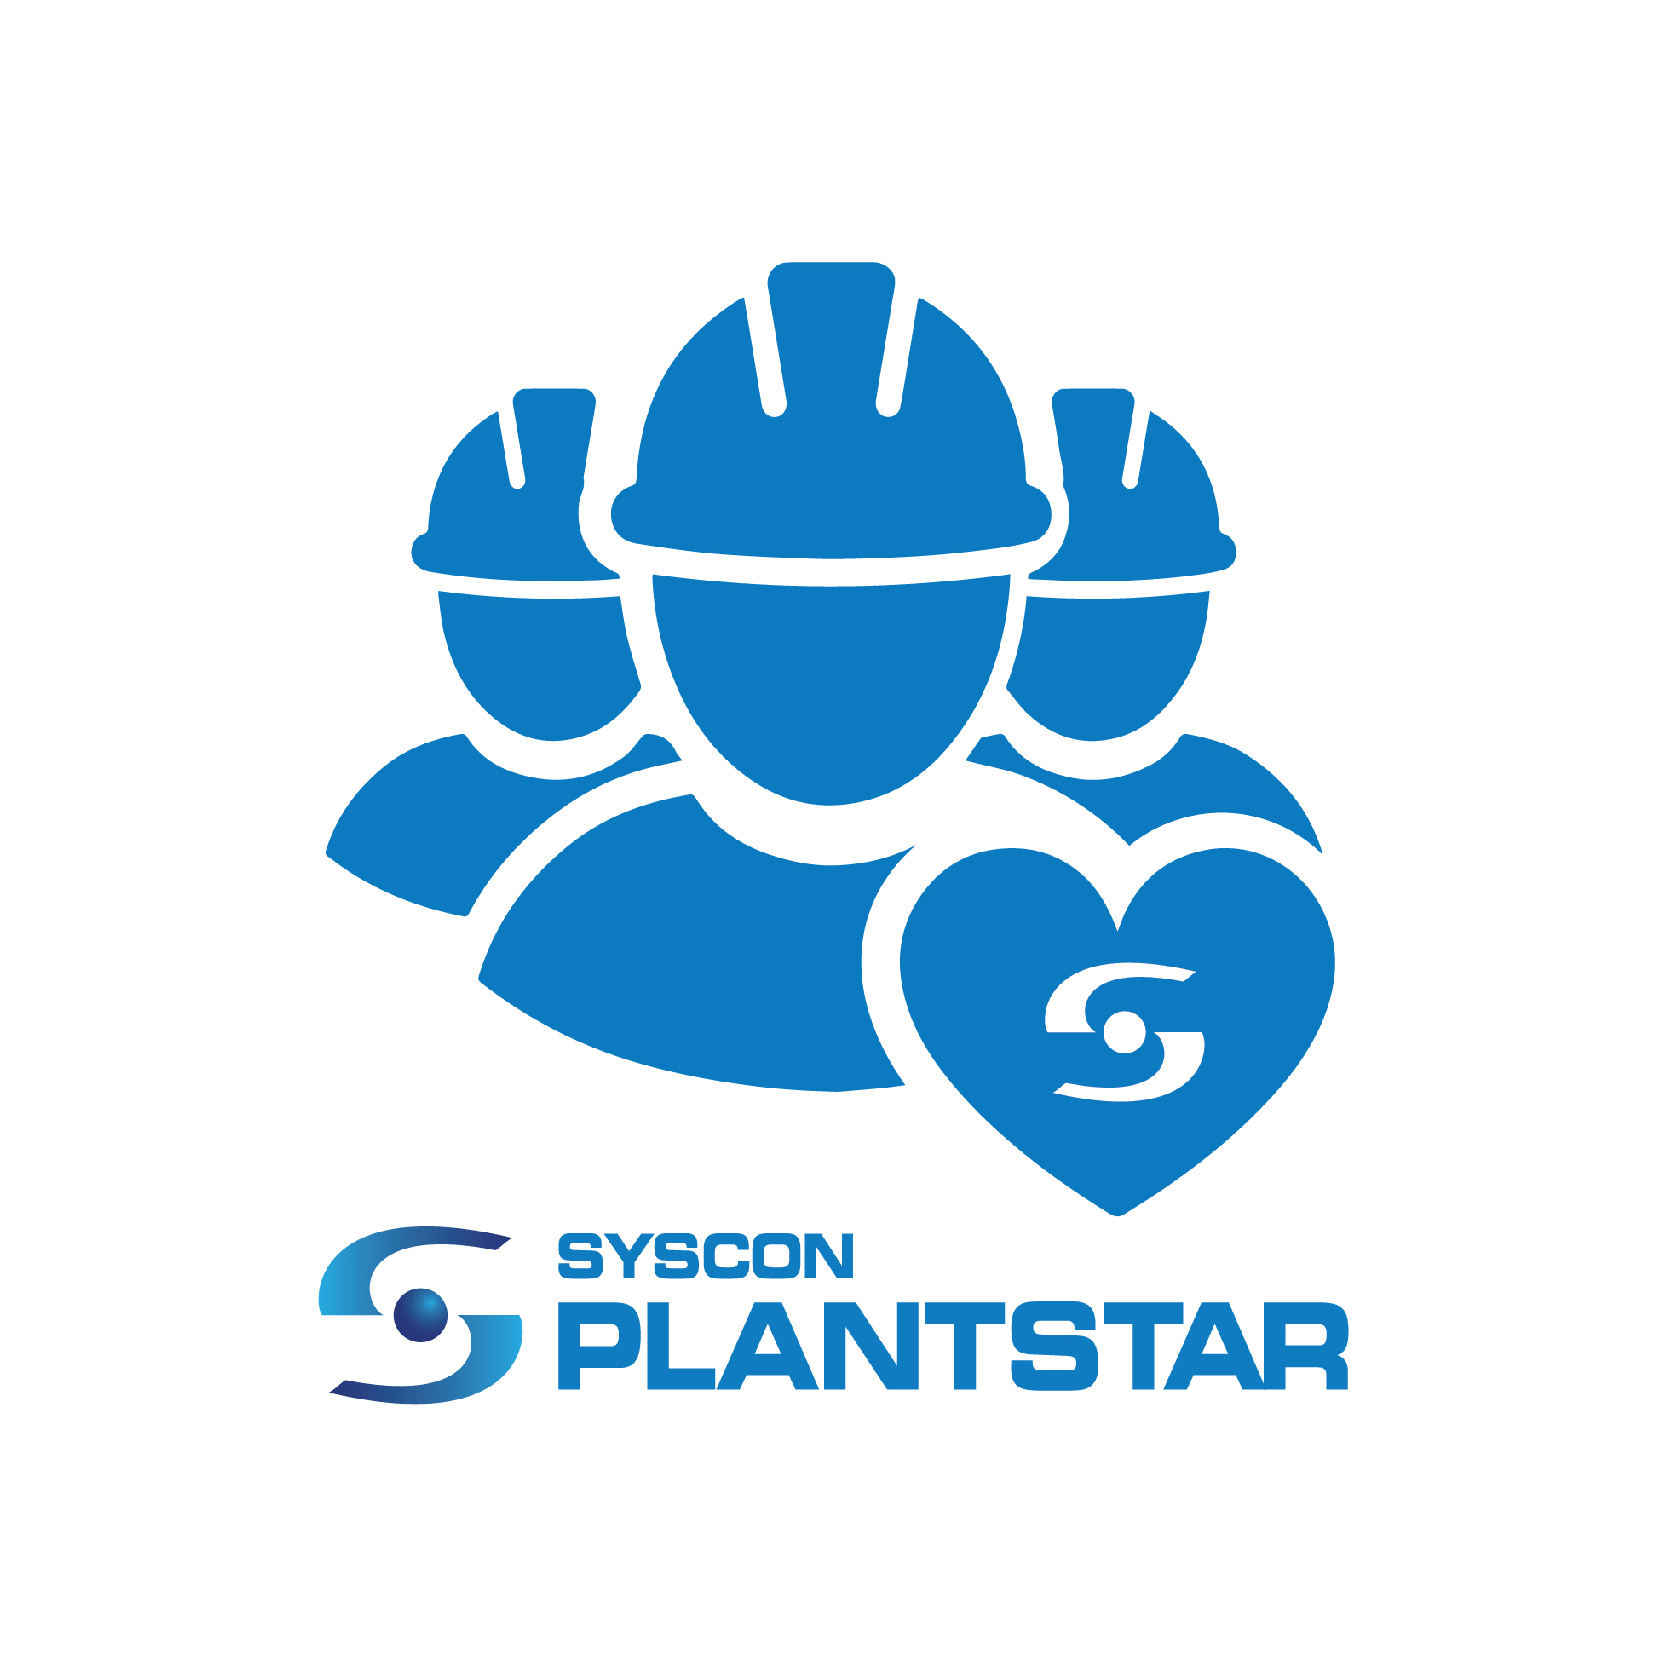 SYSCON PlantStar is making a difference for people in mfg